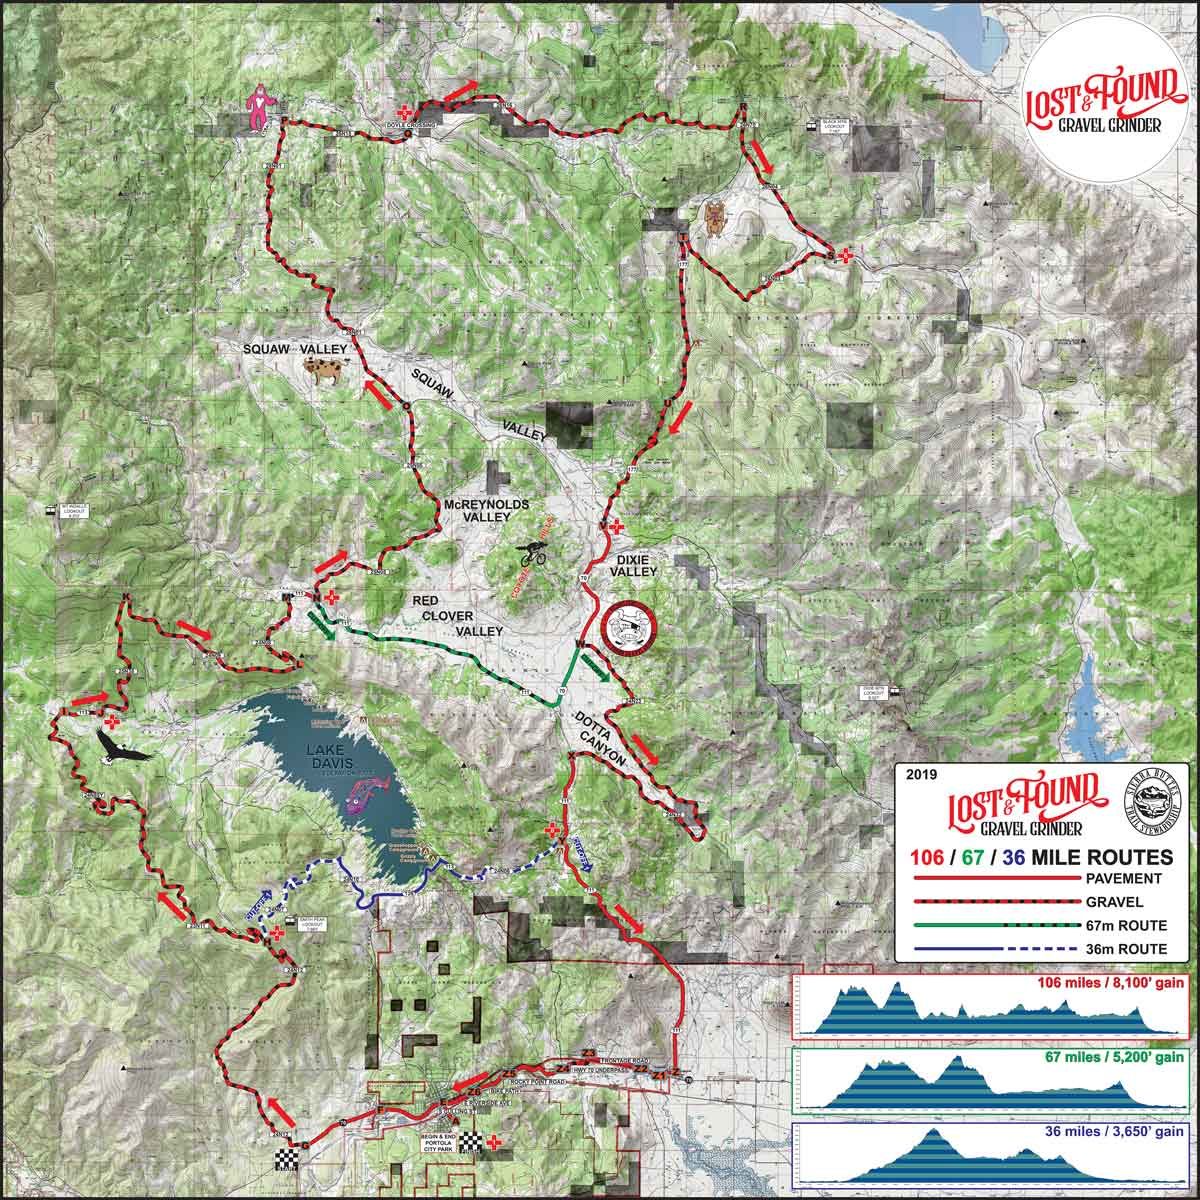 Lost and Found gravel grinder map